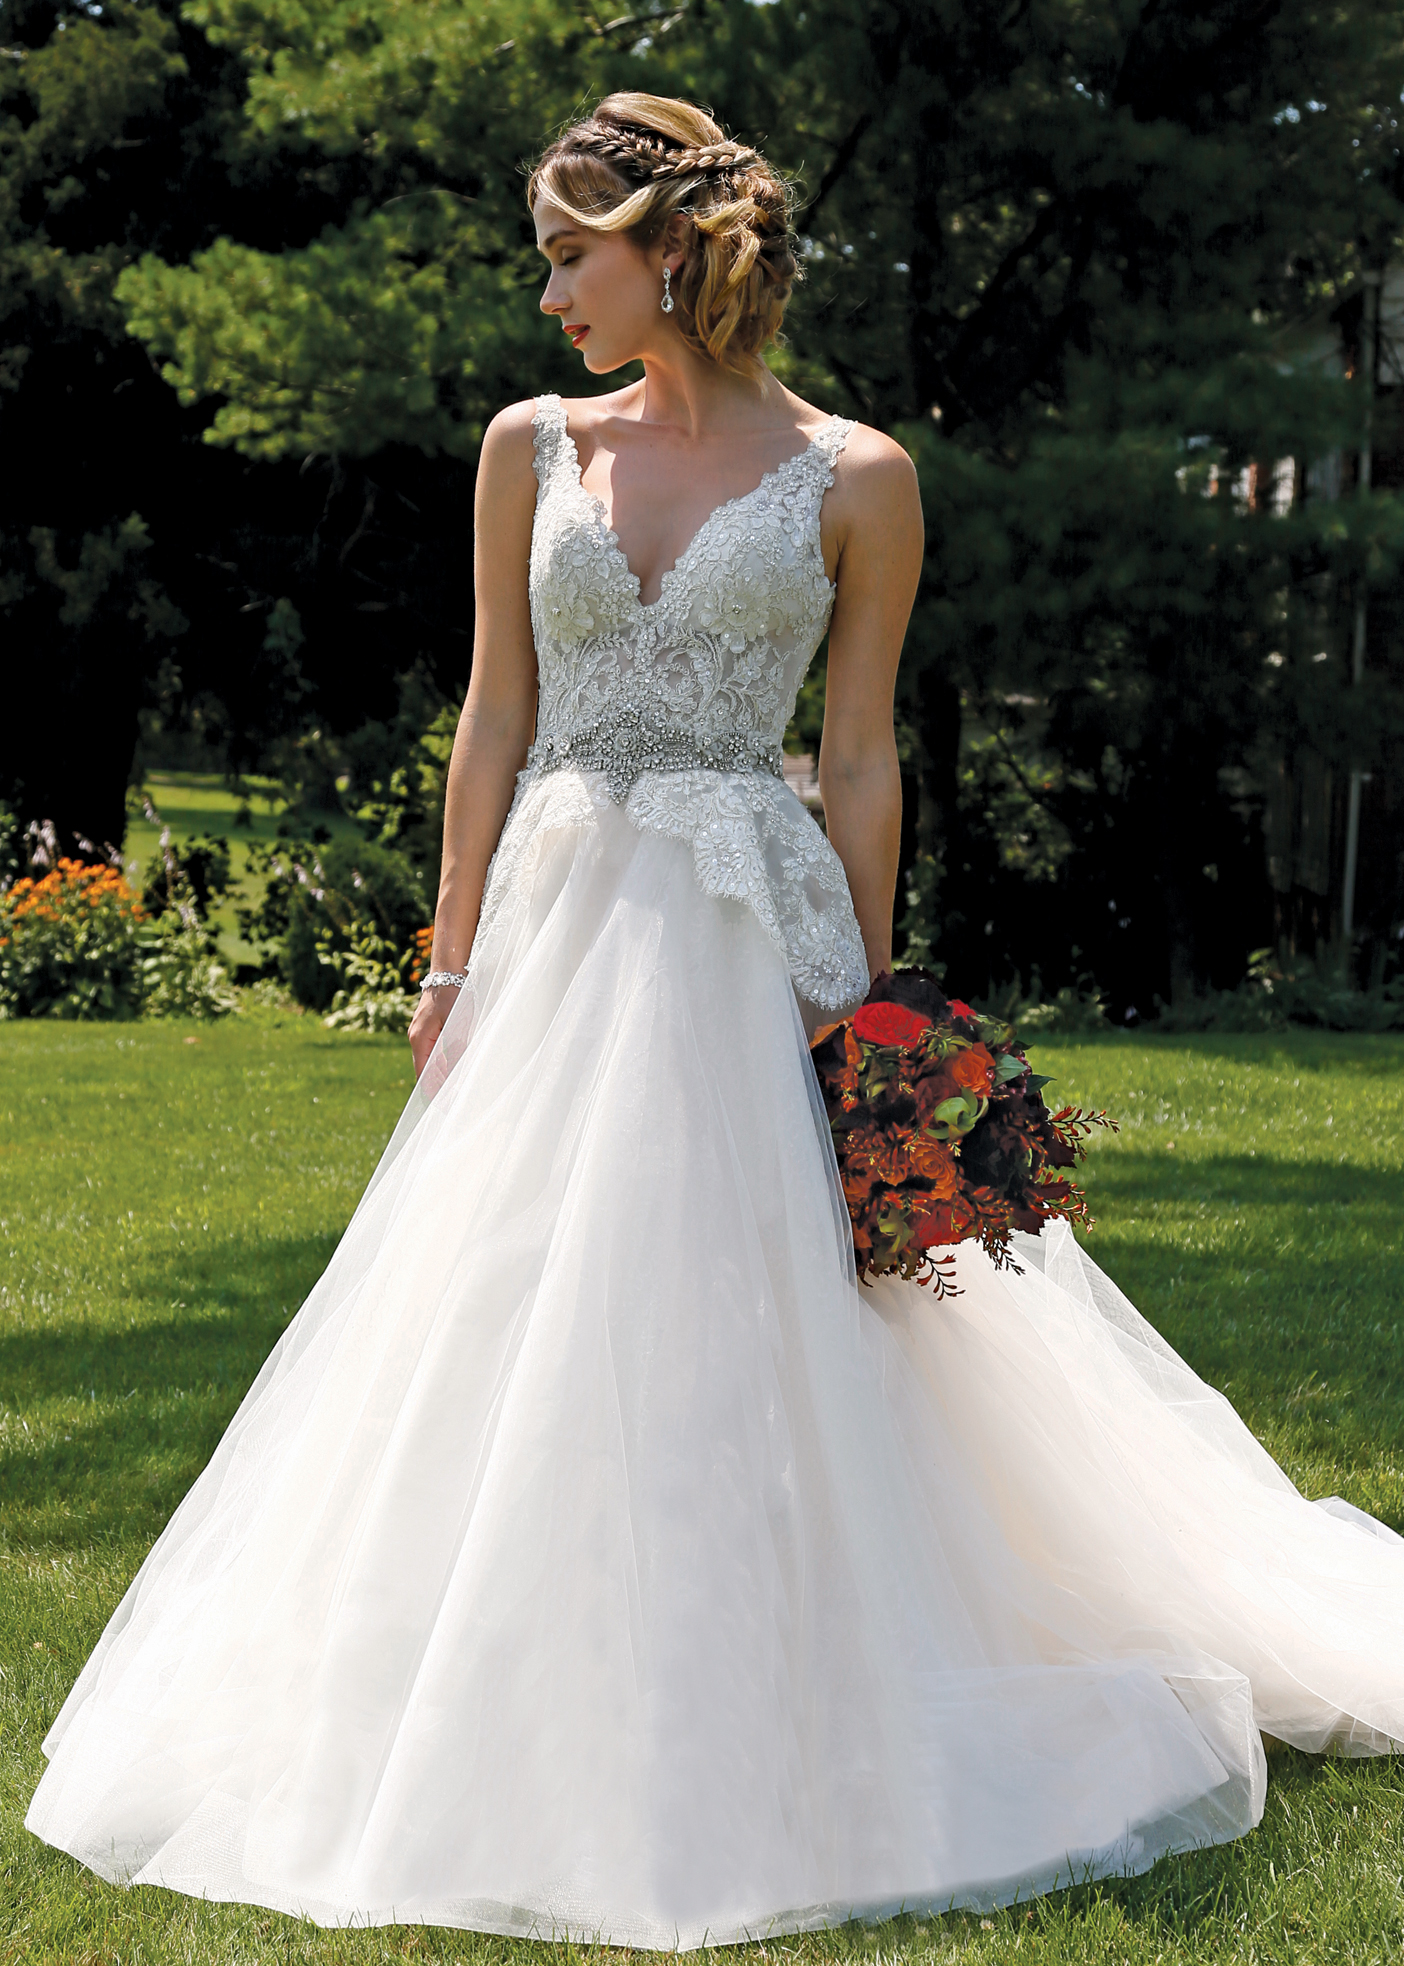 Ballgown Dress Bridal Wedding Gown By Eve Of Milady Ny Nj